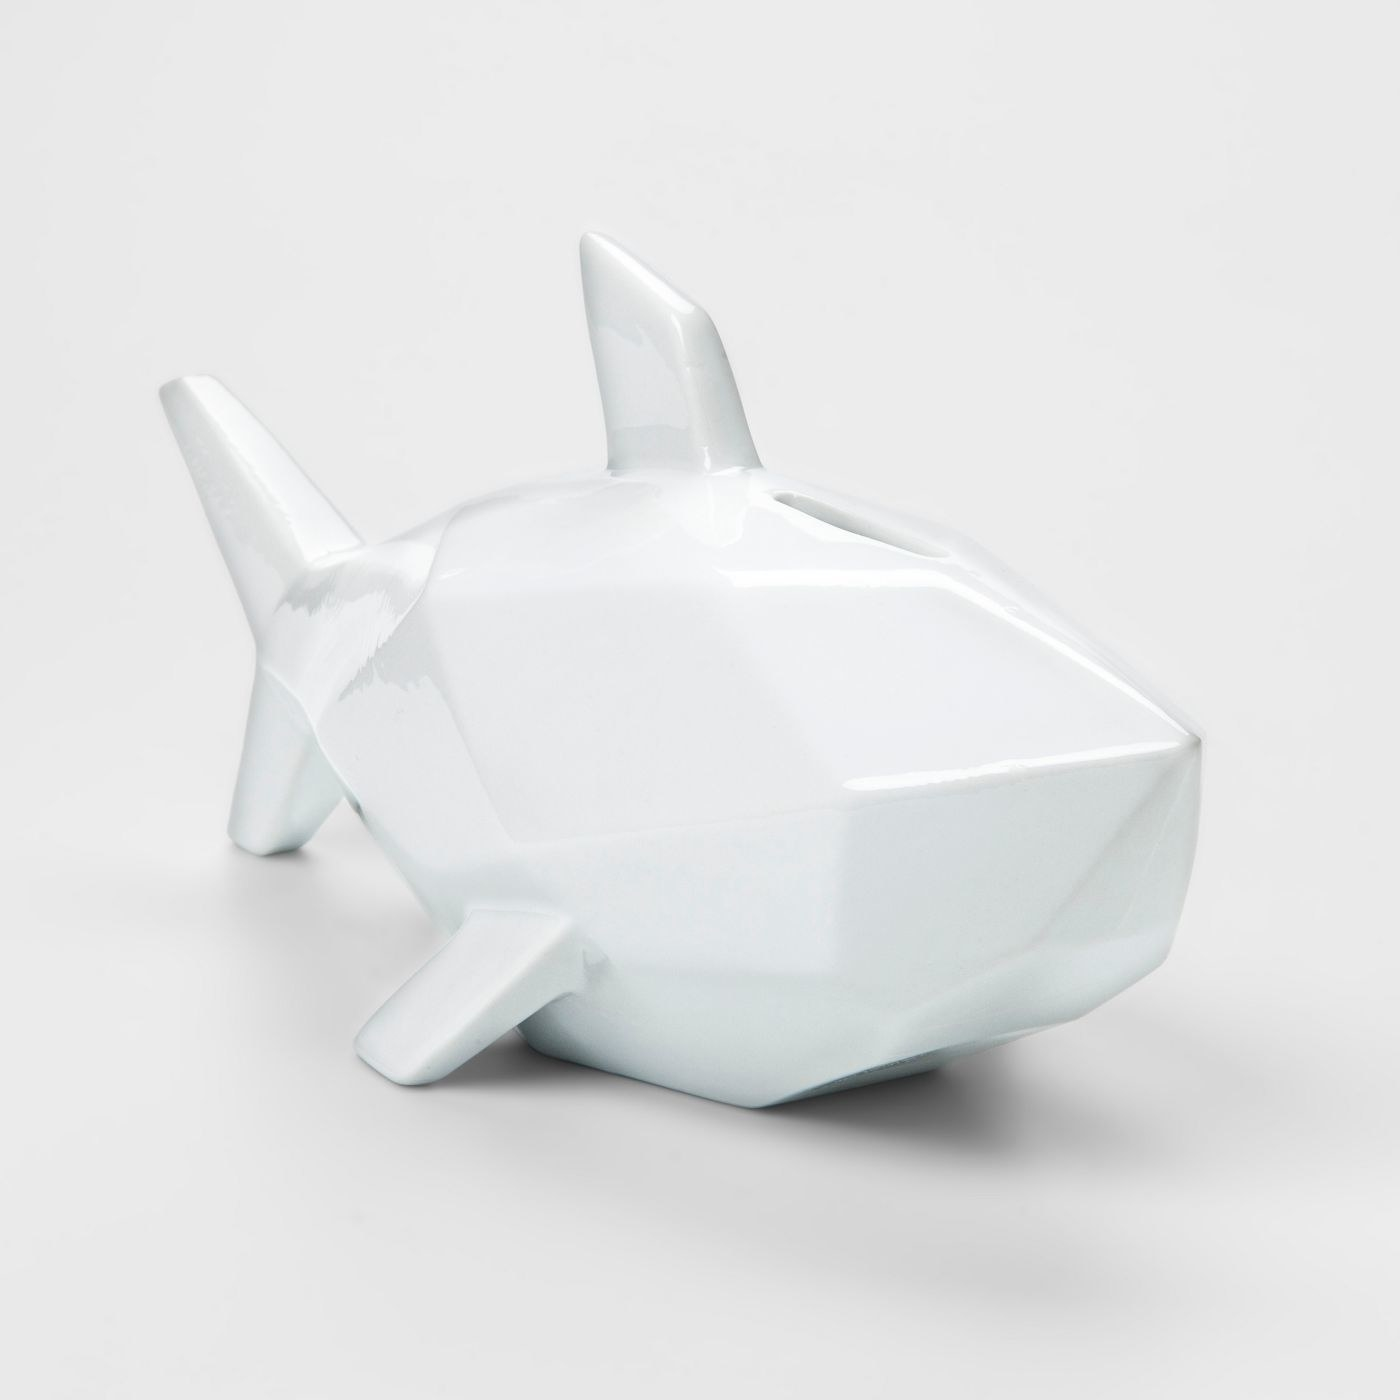 The bank, which is white and shaped like a shark, but abstracted, with many angles and no eyes